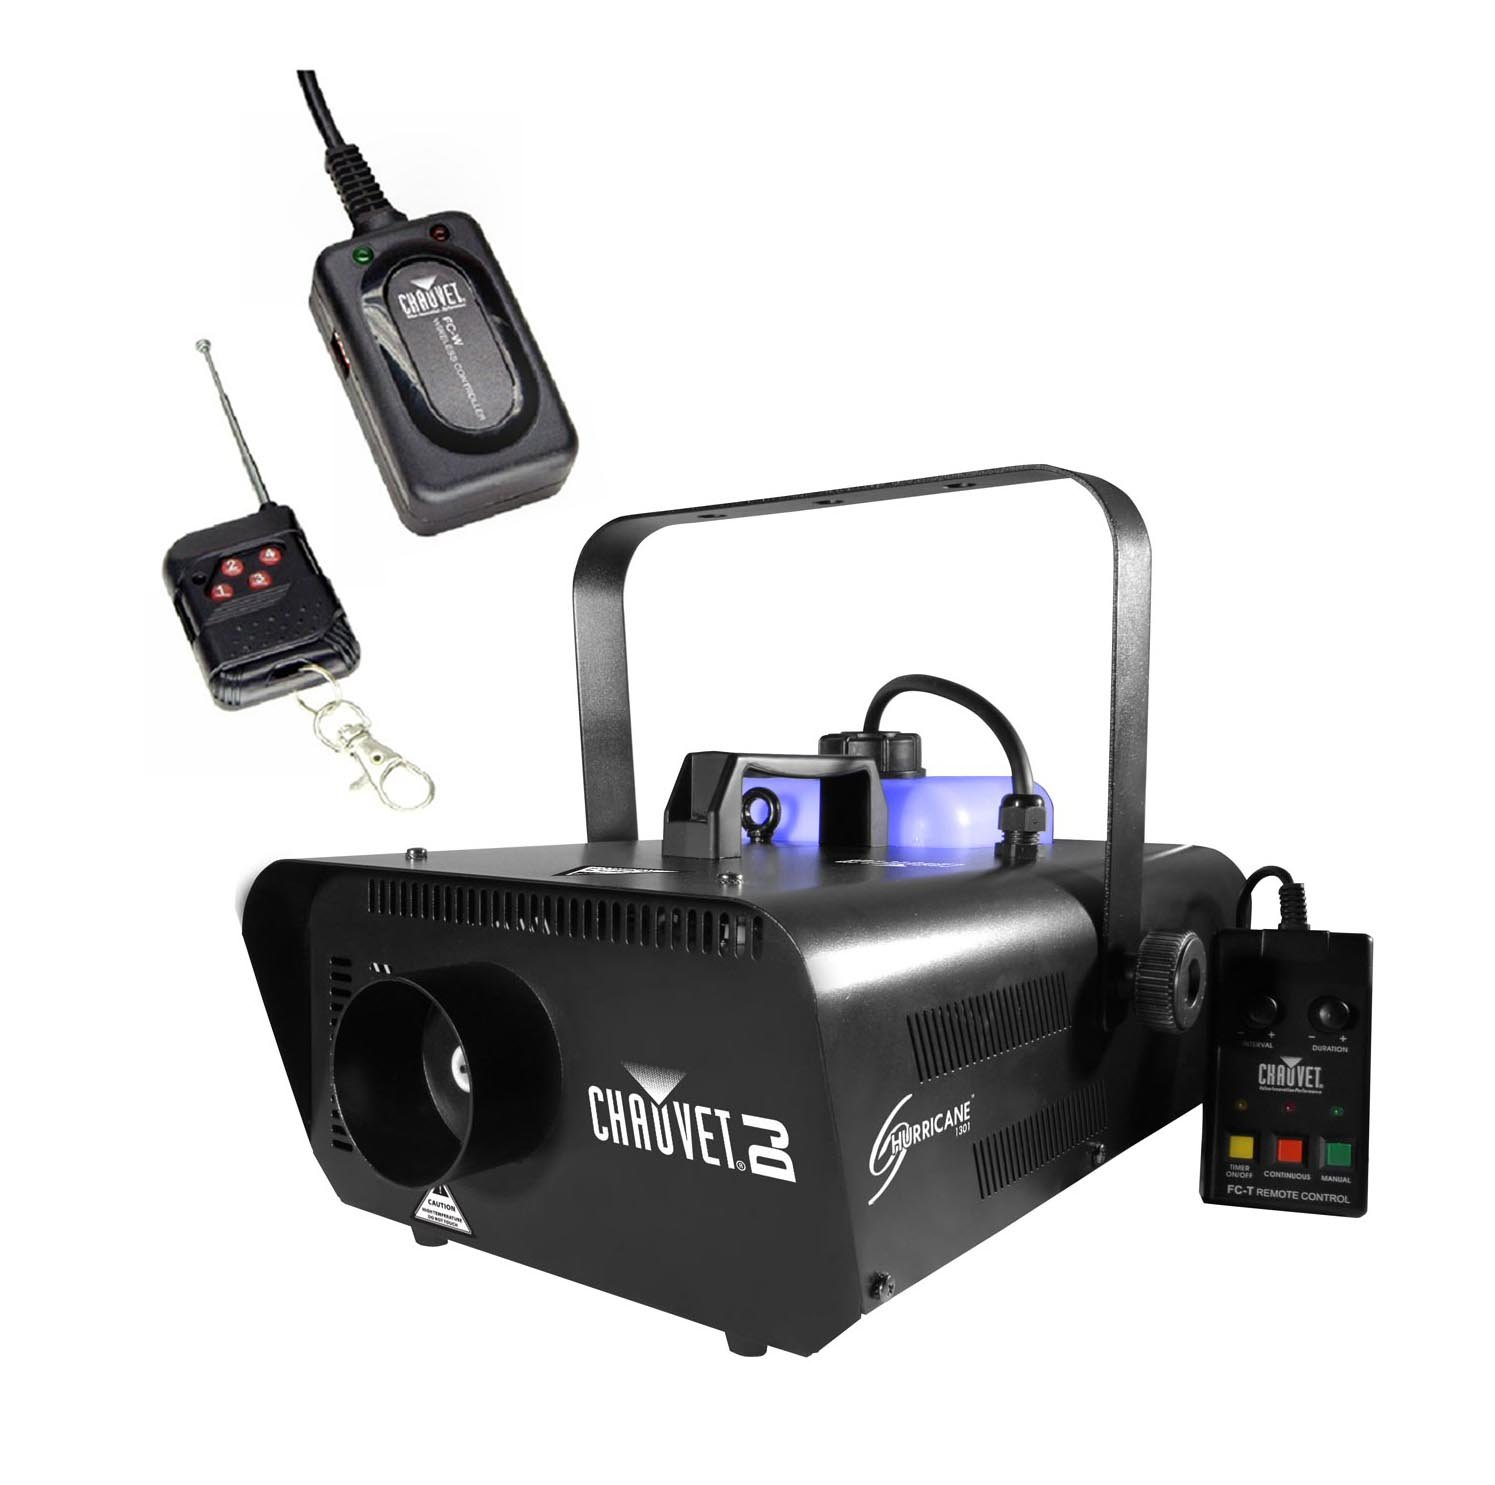 Chauvet DJ Hurricane 1301 H1301 Pro Fog/Smoke Machine w/ FC-W Wireless Remote